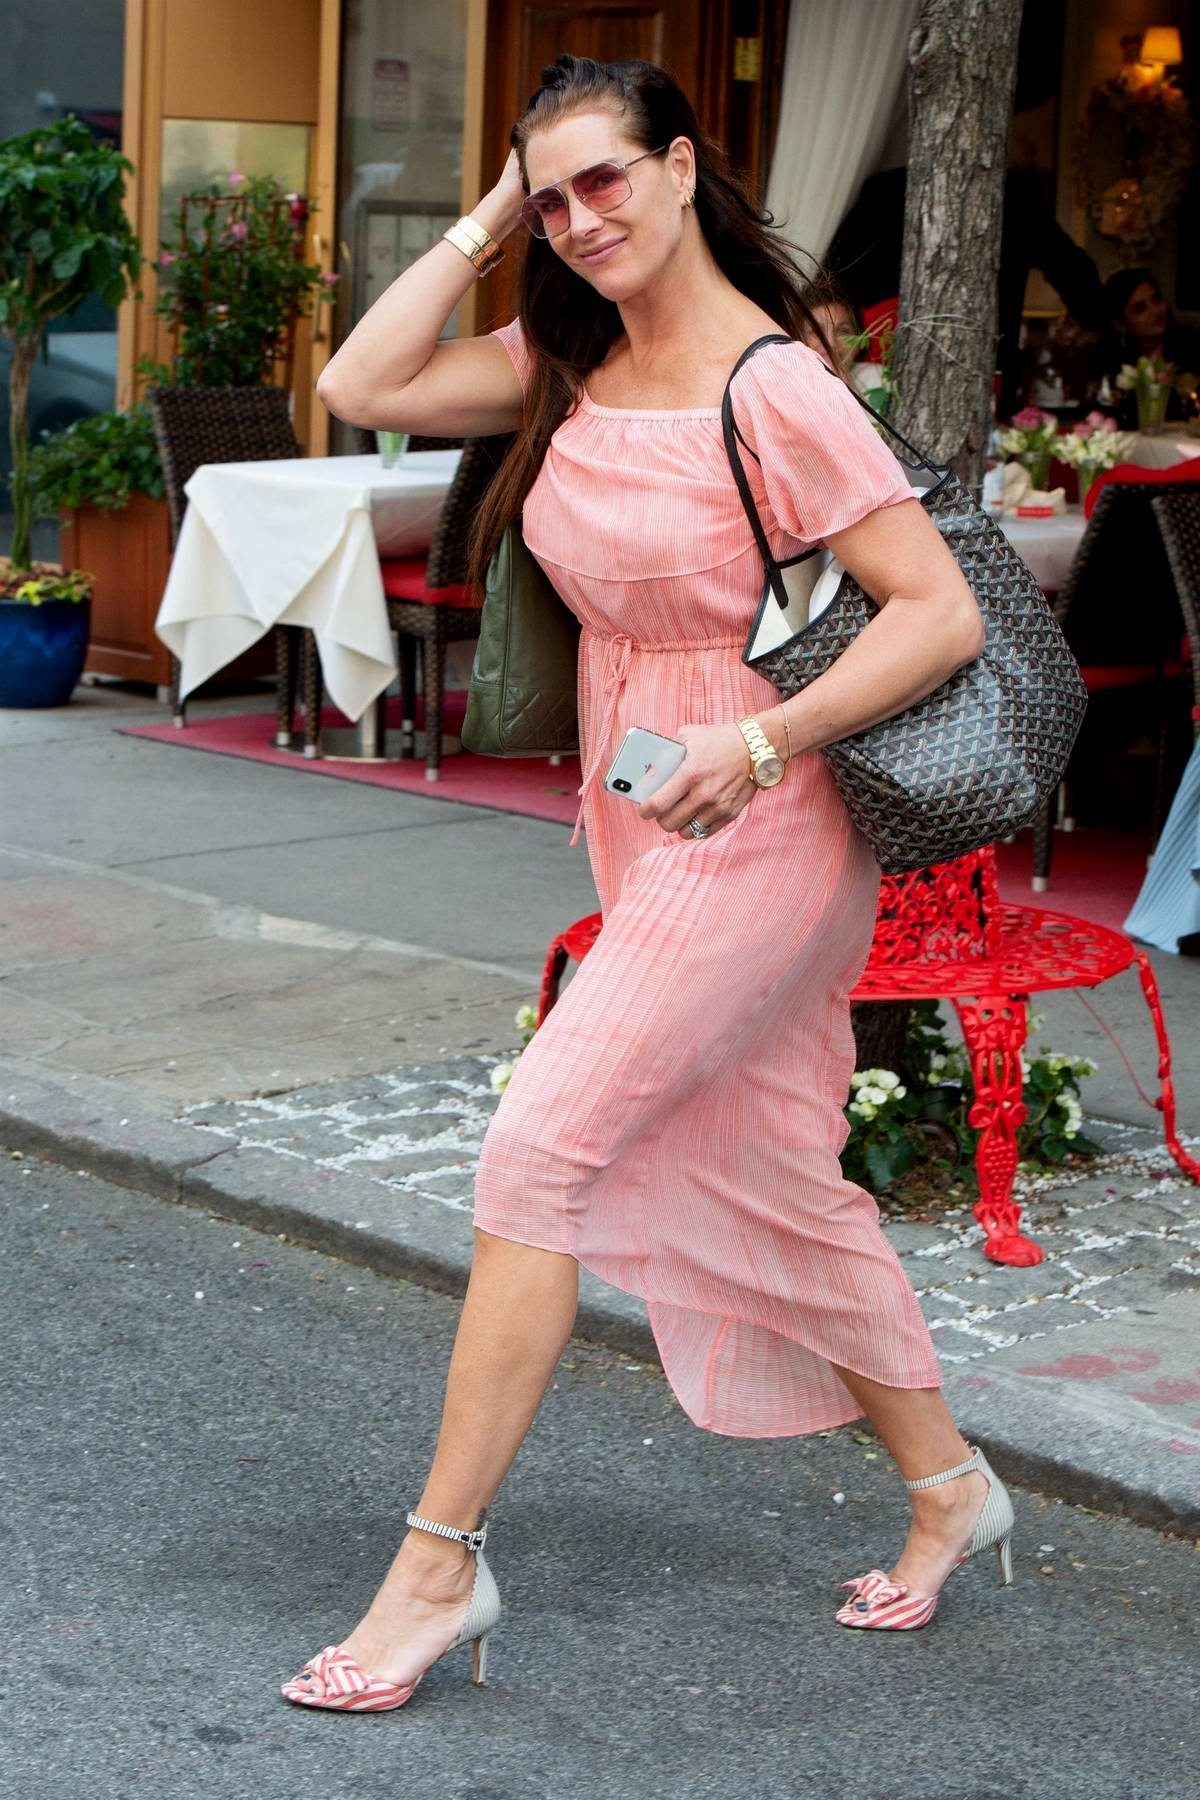 Brooke Shields looks lovely in a pink dress as she leaves Nello restaurant in New York City